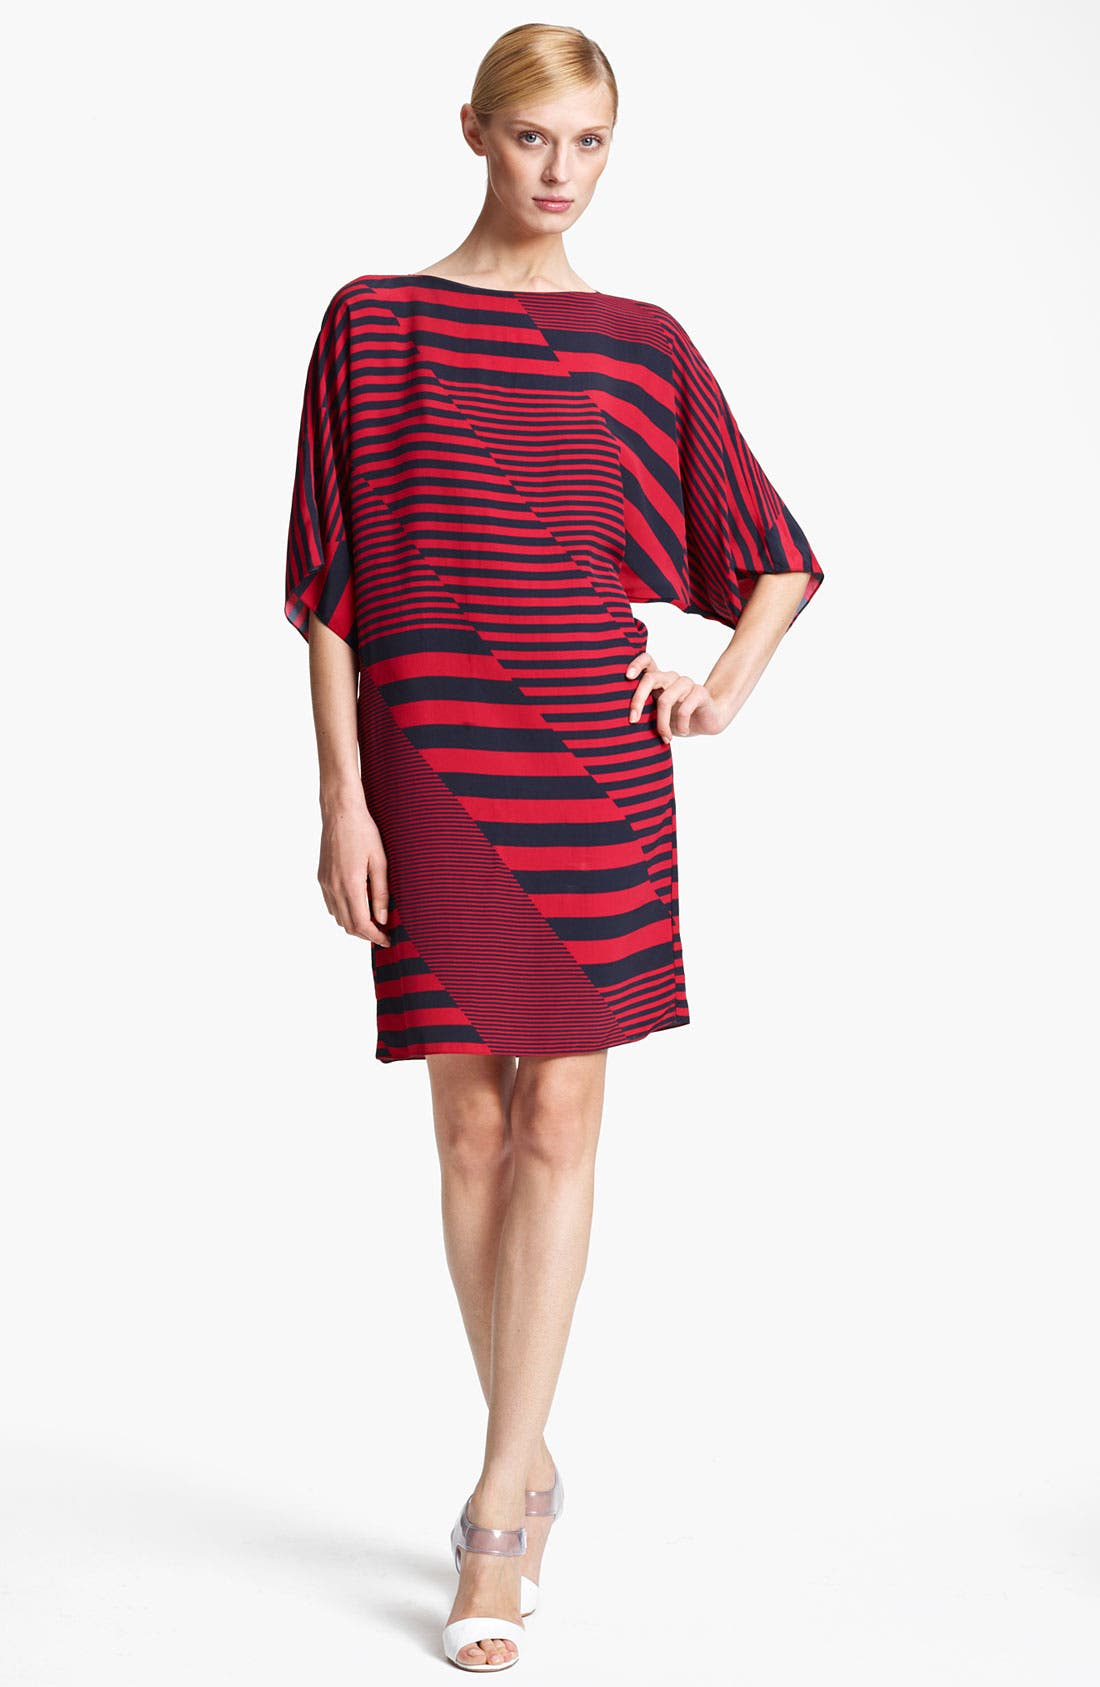 Main Image - Michael Kors Stripe Print Marocain Dress